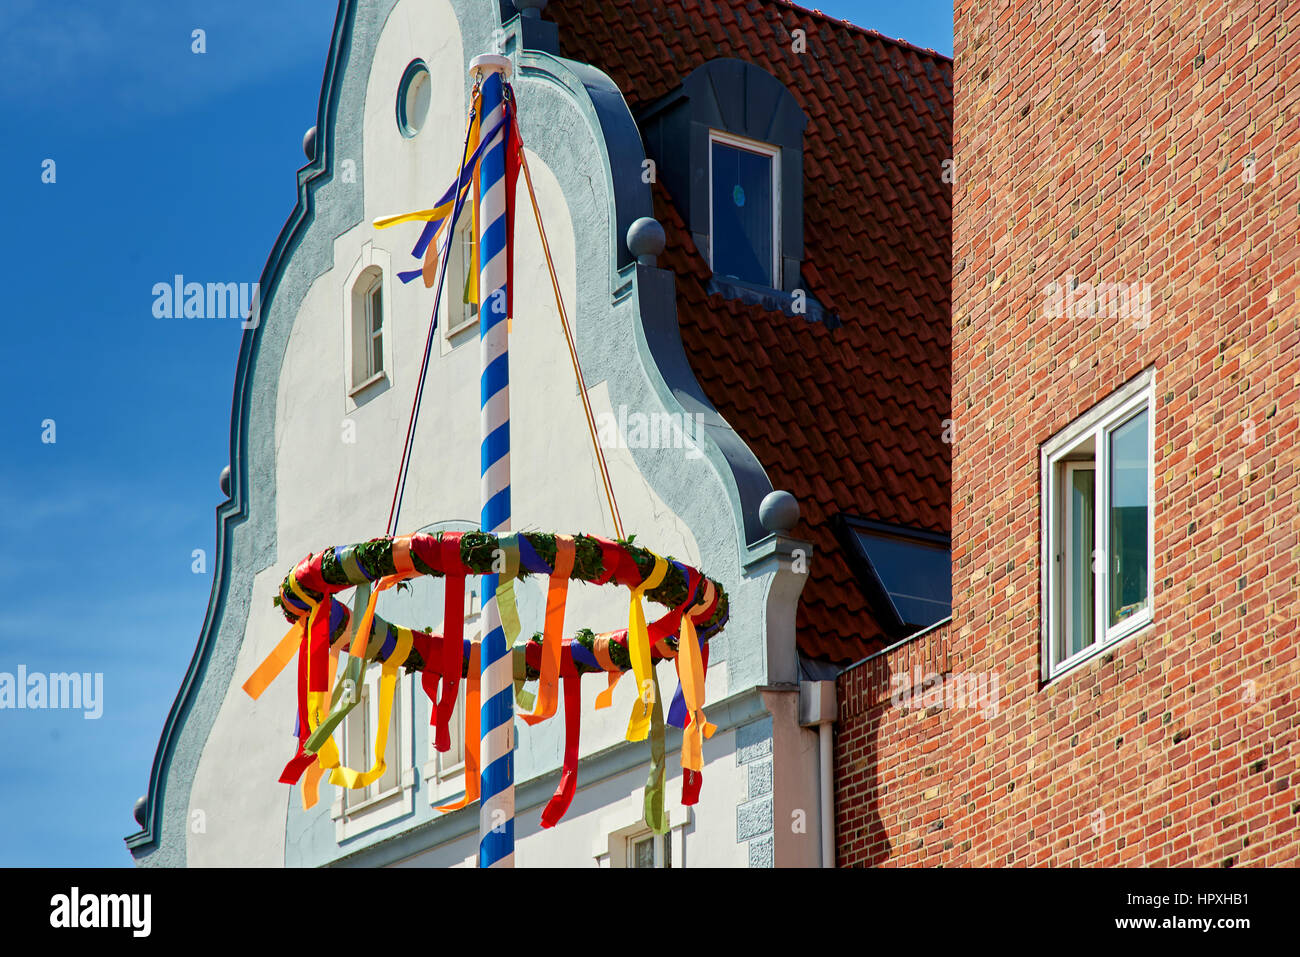 colorful may pole in town - Stock Image